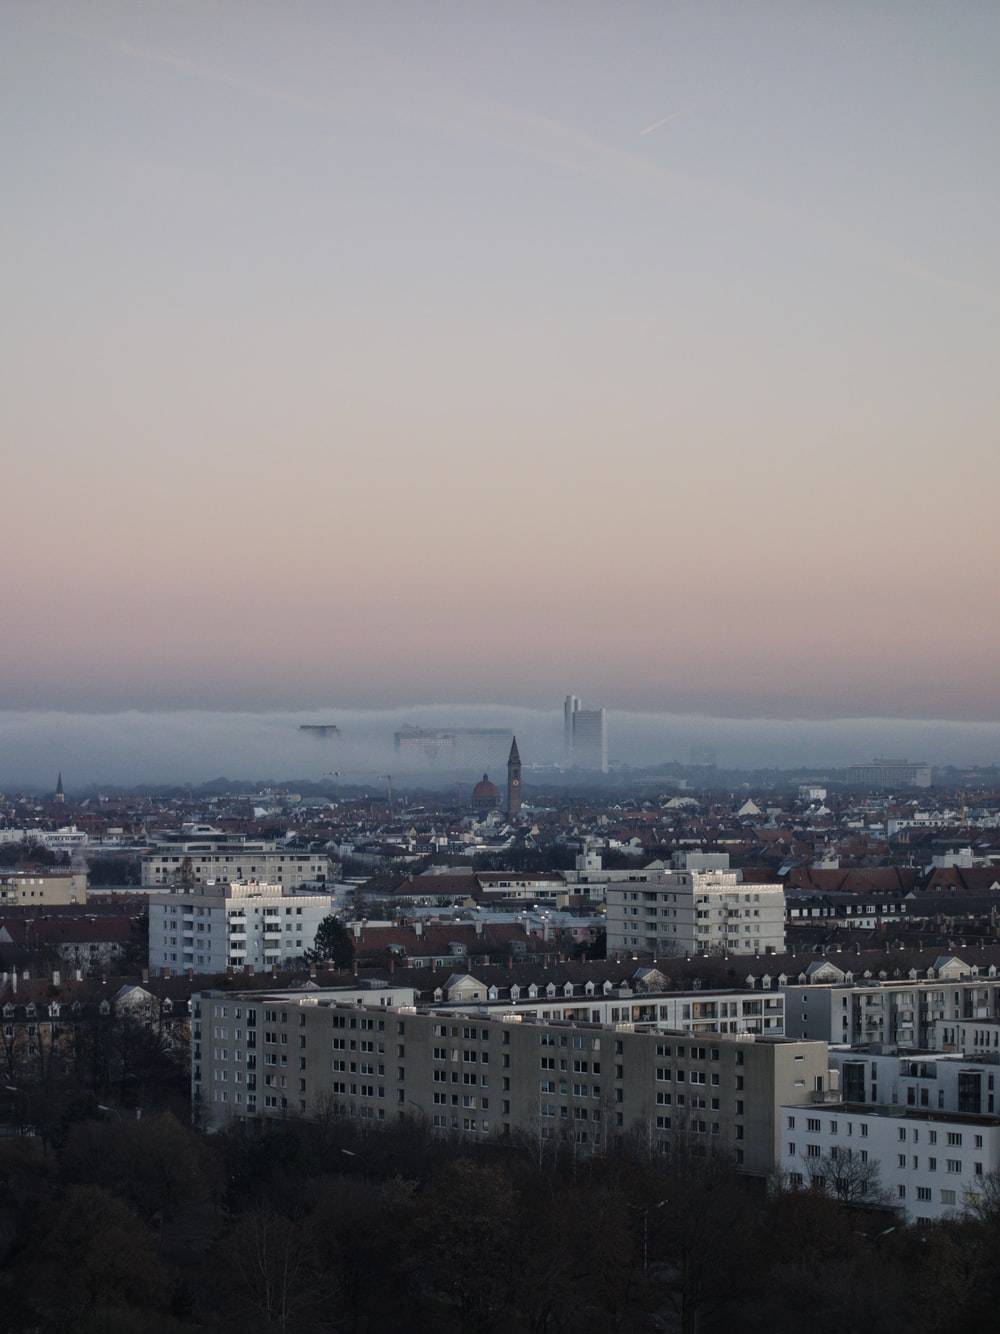 city with high rise buildings under white sky during daytime